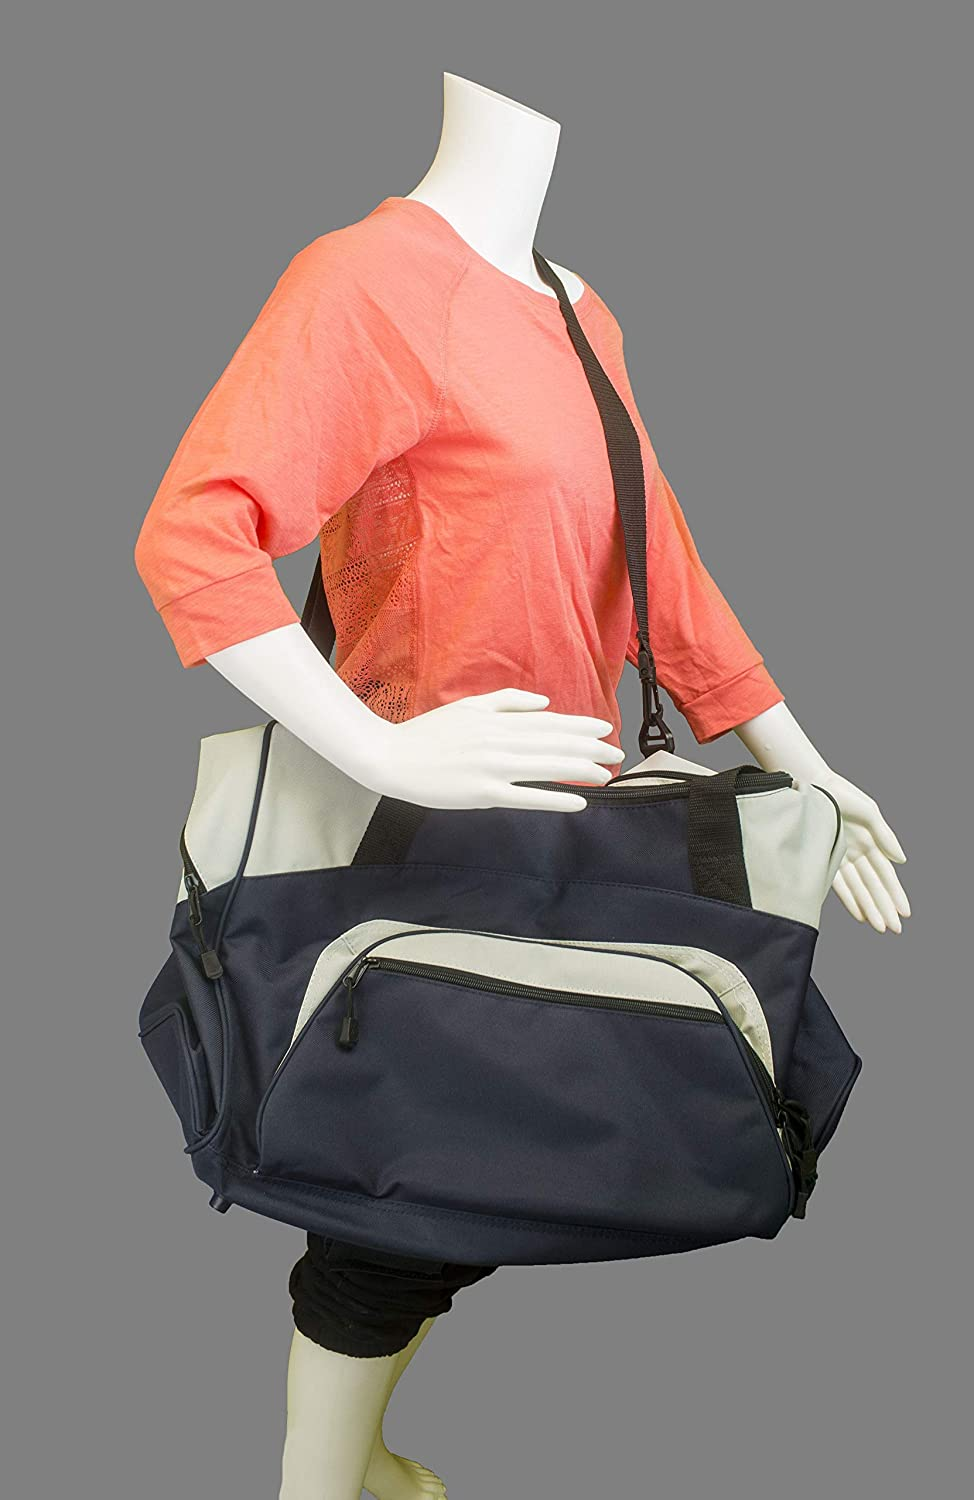 Maroon//Grey Standard Colorblock Sport Duffle Bag all about me company Cheer Personalized